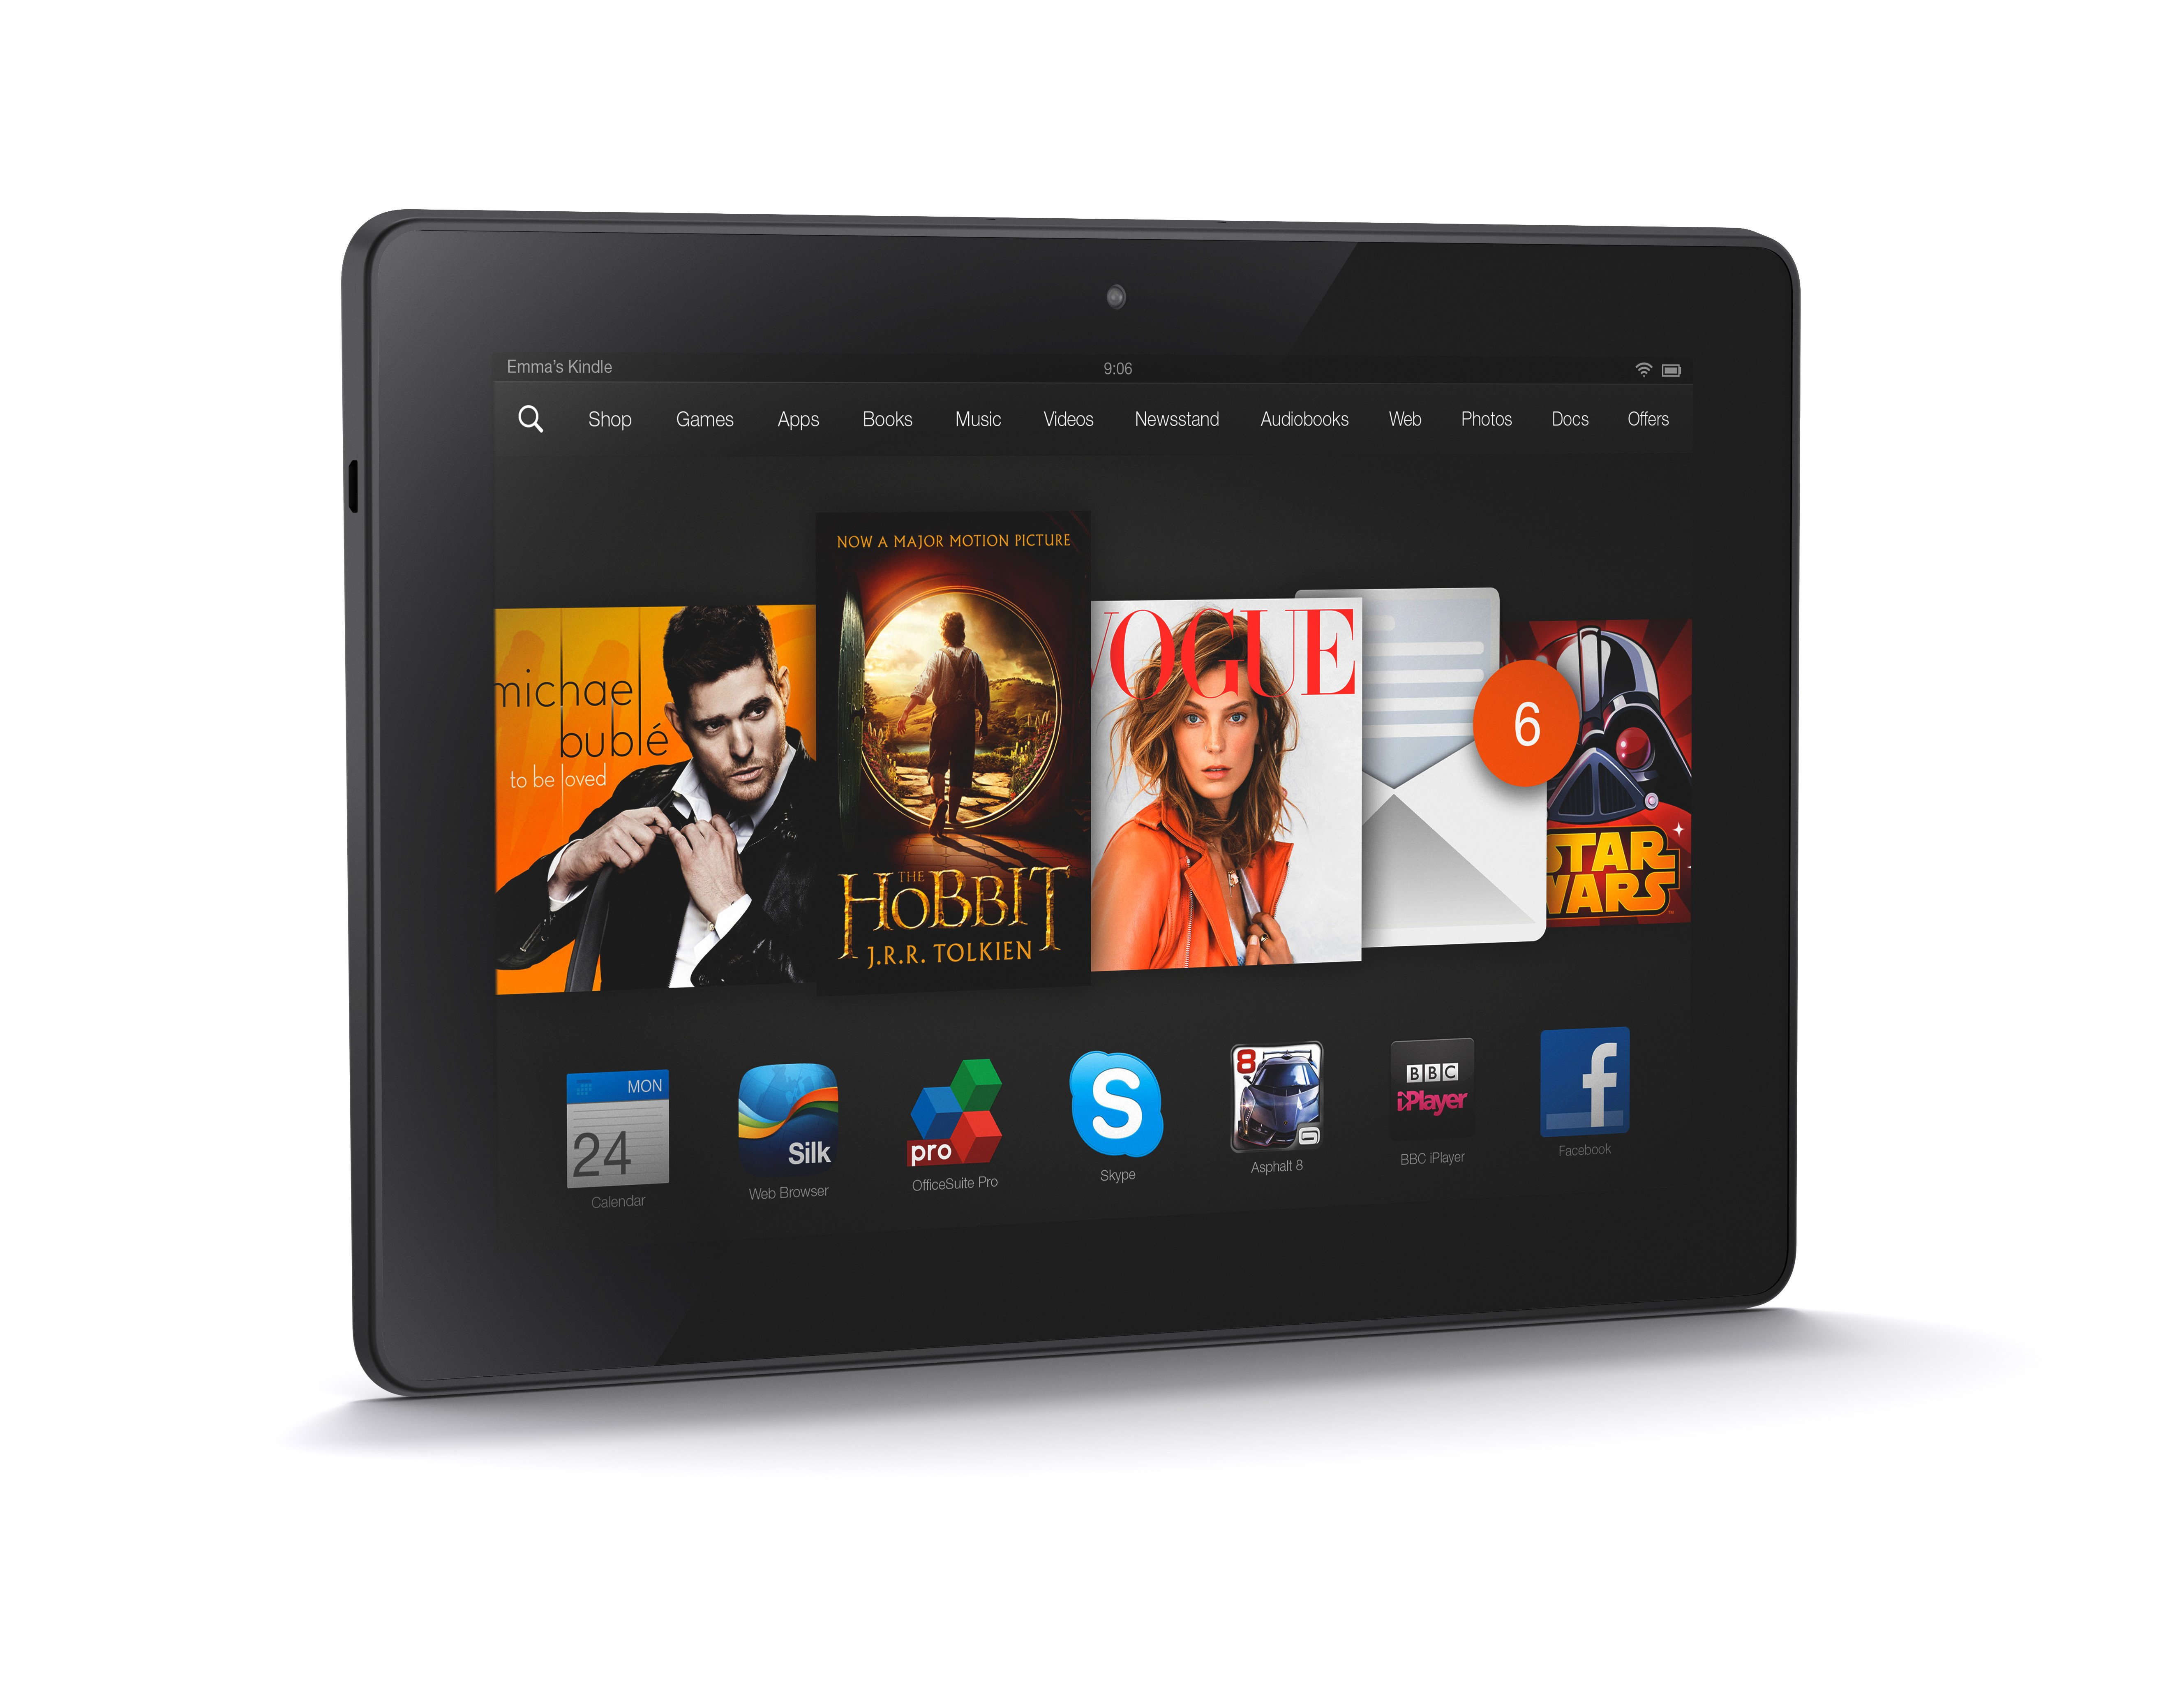 How to root Amazon Kindle Fire HDX 8.9 [Guide]